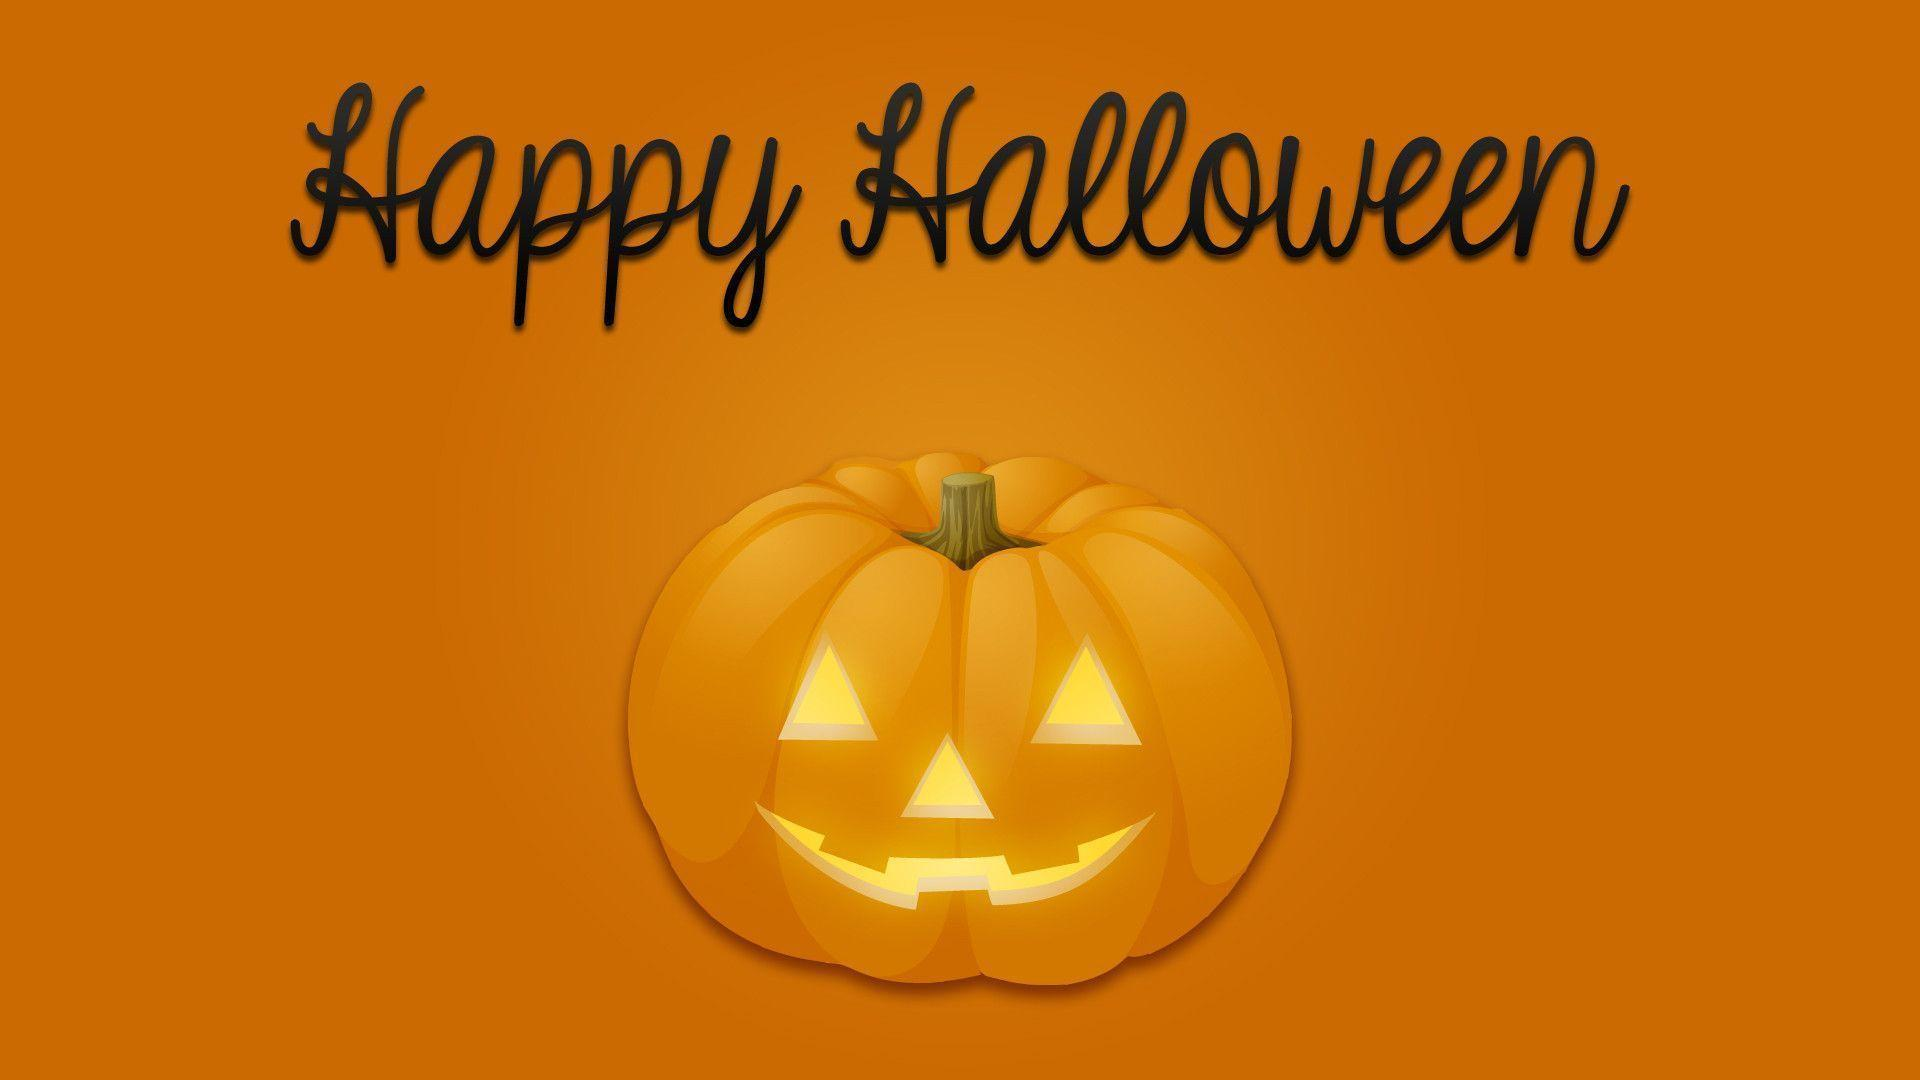 Happy Halloween Backgrounds 1920x1080